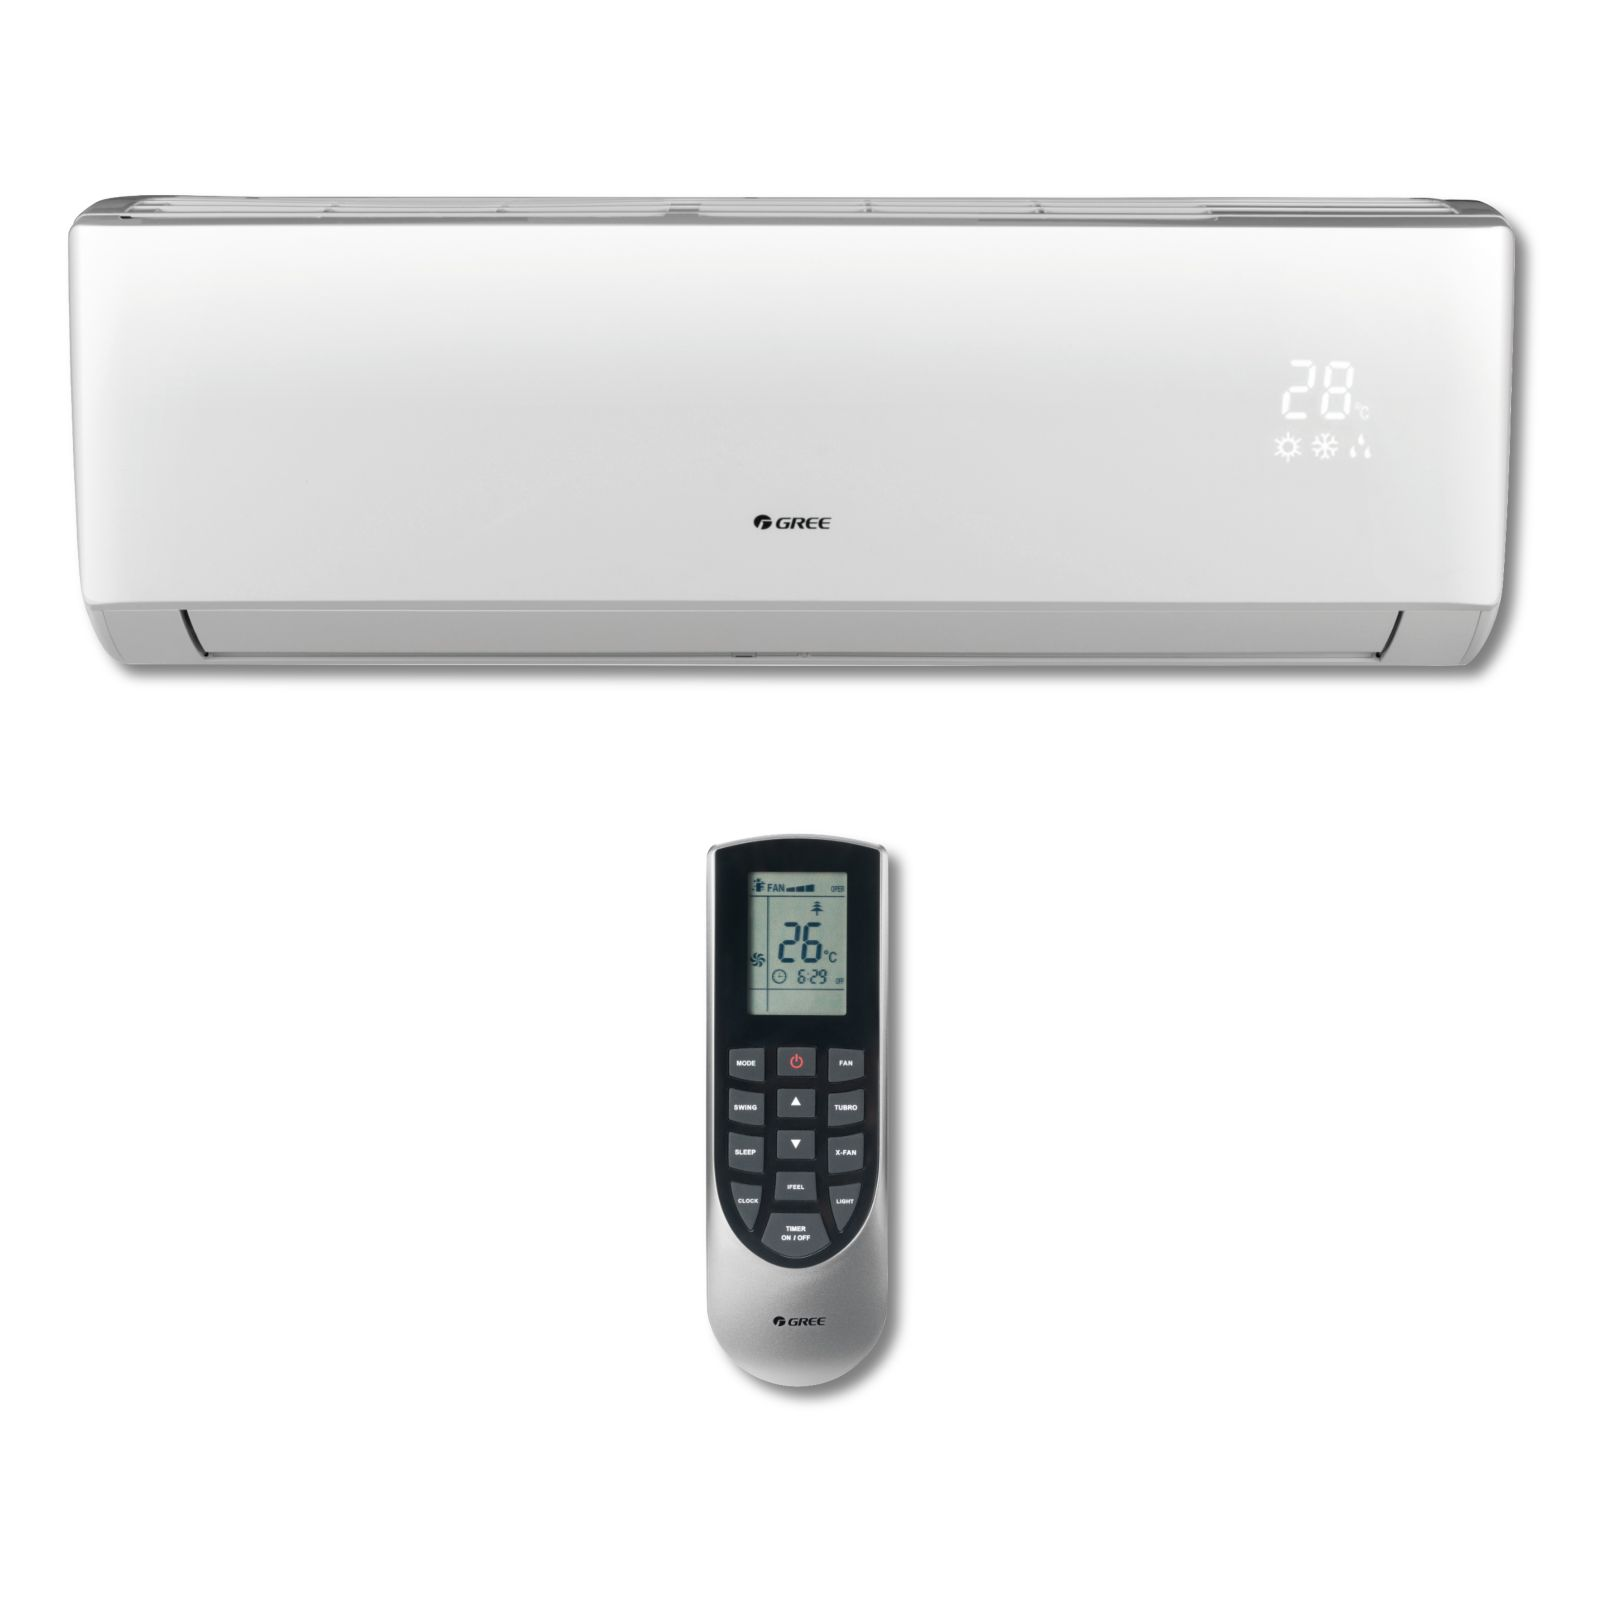 GREE VIR30HP230V1AH - Vireo 30,000 BTU Wall Mounted Inverter Heat Pump Indoor Unit